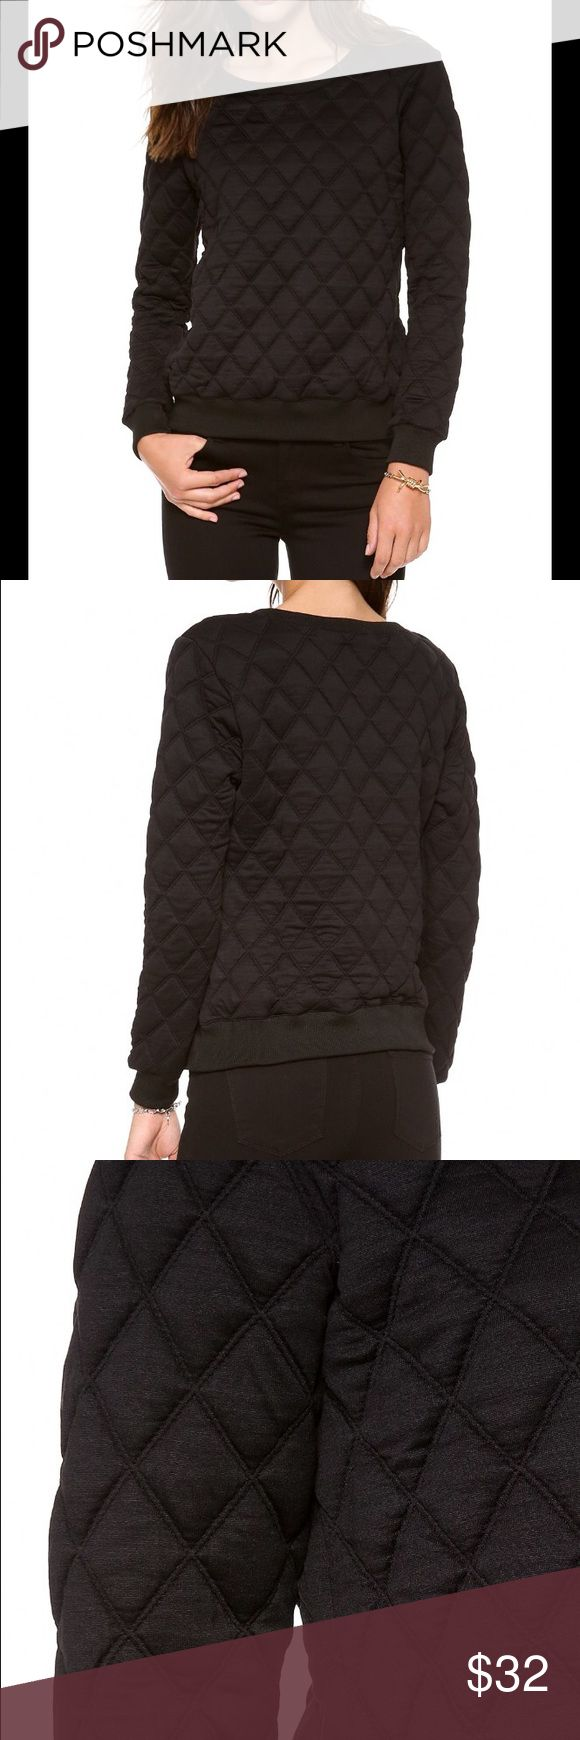 Rory Beca 'Bragg' quilted sweatshirt in black Worn just once. Too large for me (I generally wear XS). Pristine condition. Rory Beca Tops Sweatshirts & Hoodies